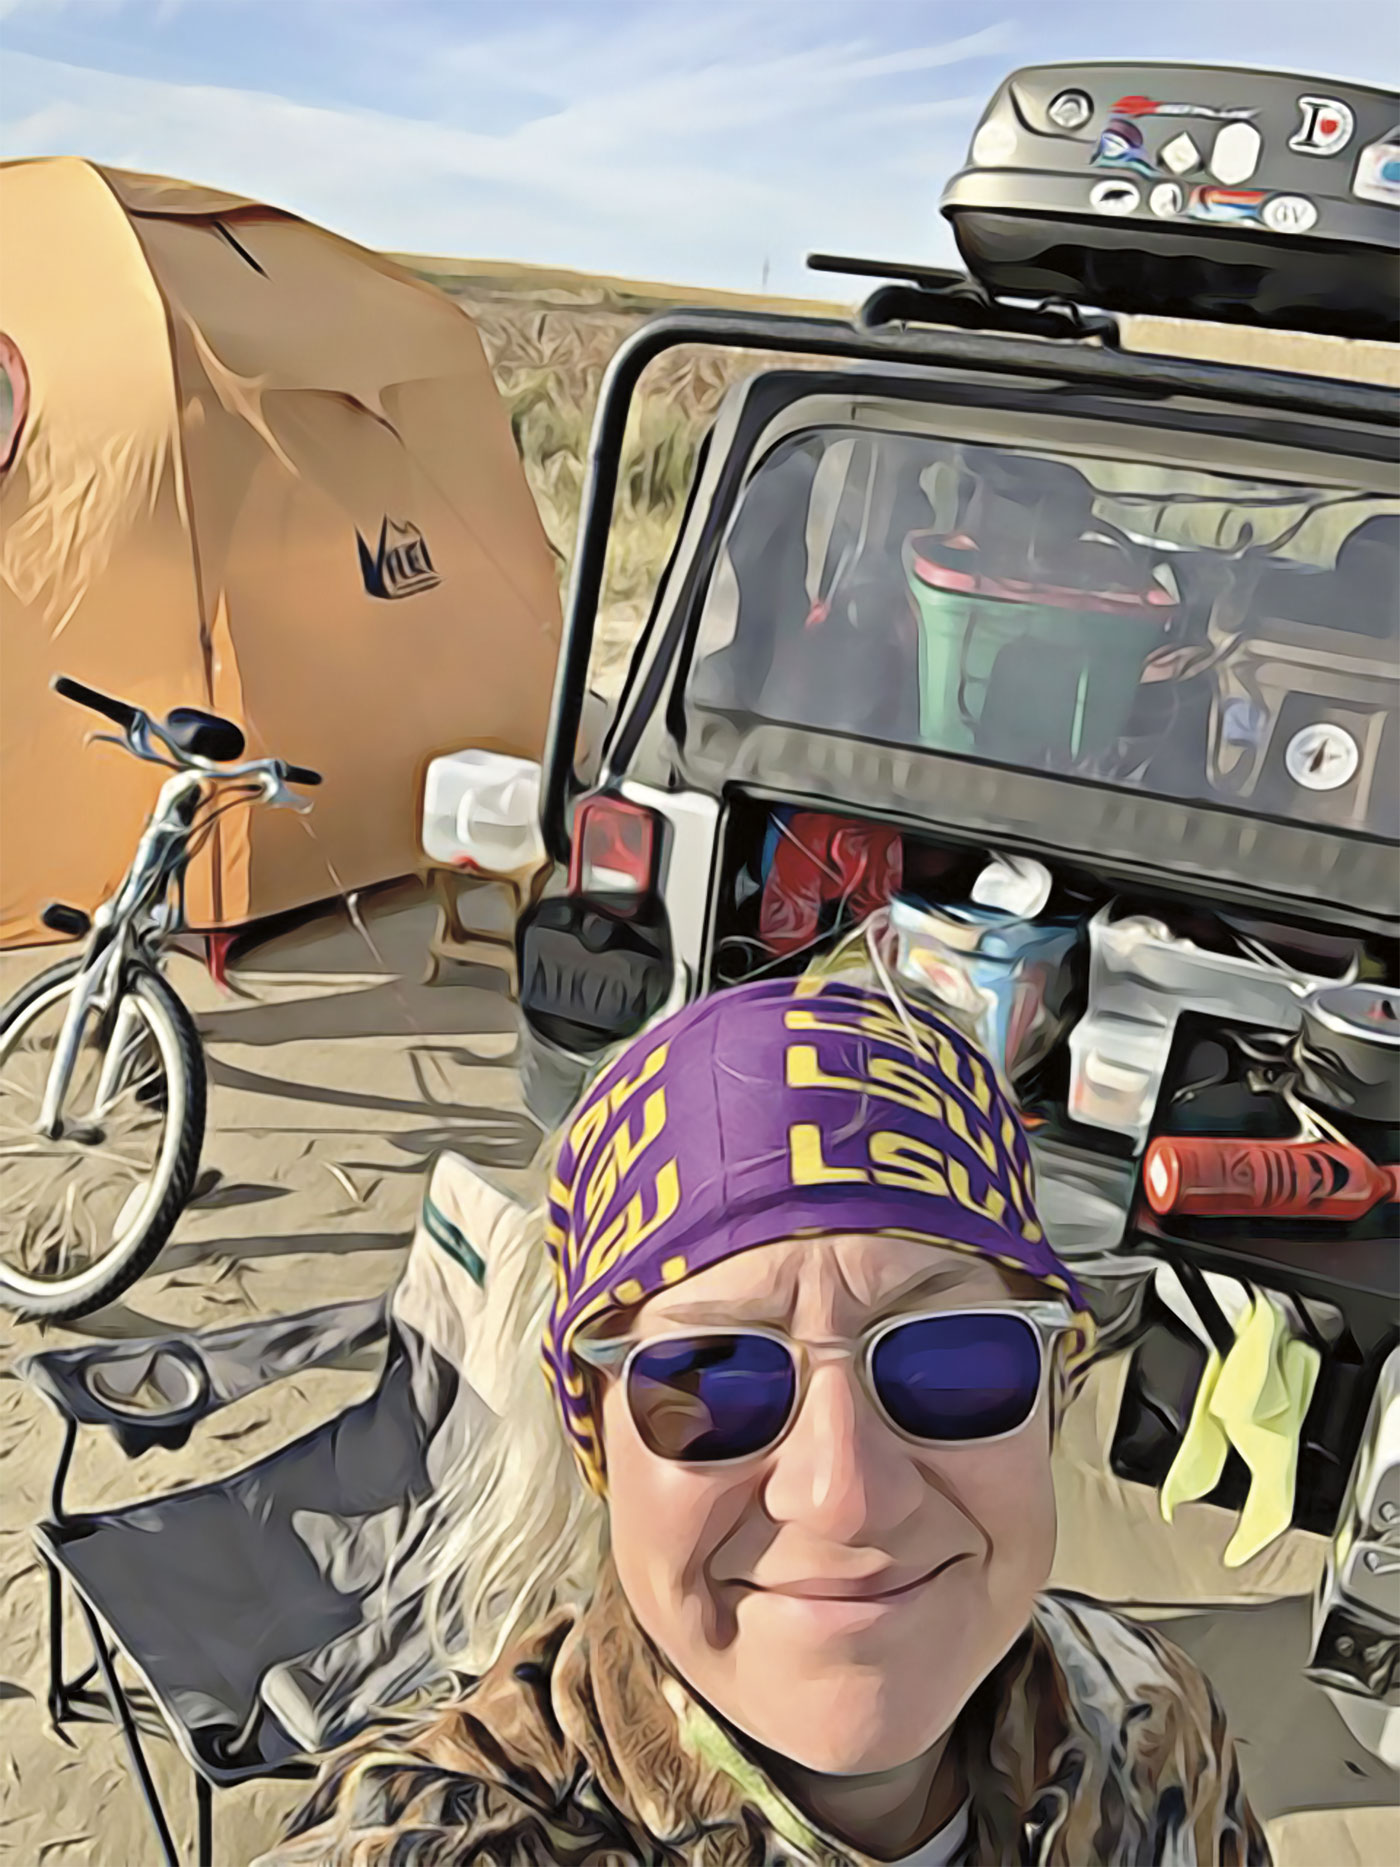 Michelle in front of her jeep, bike, and tent